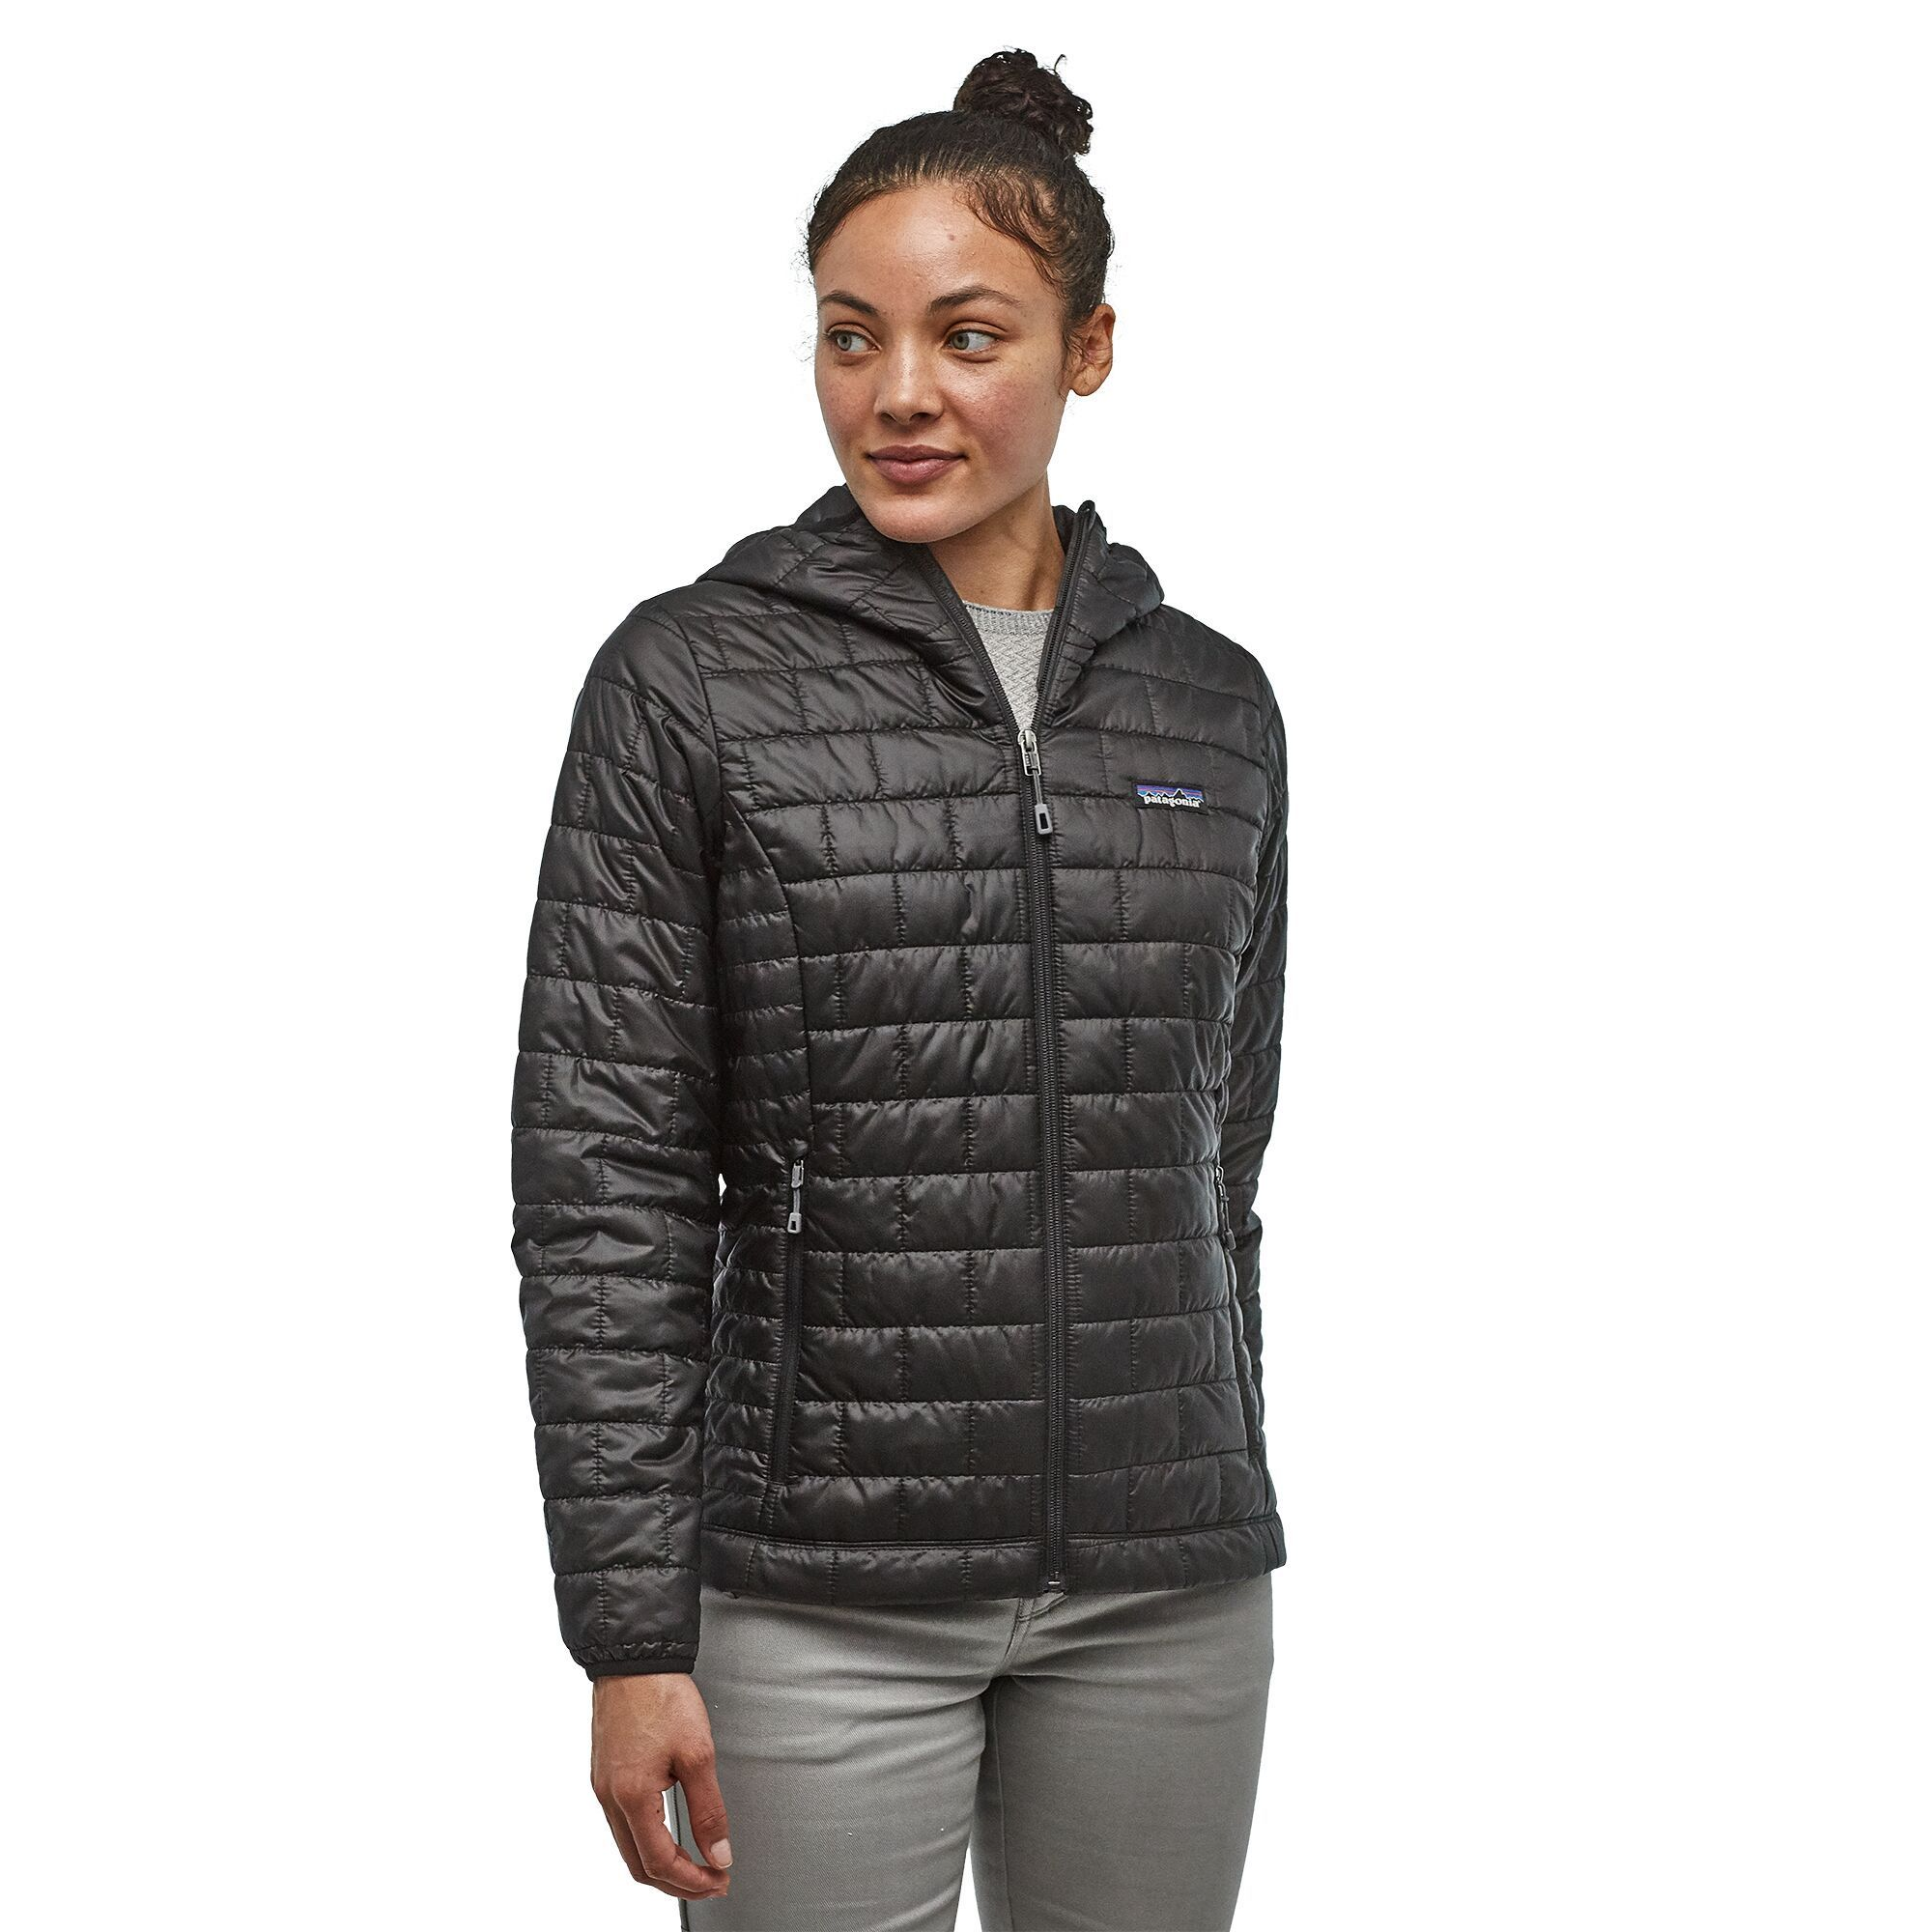 Patagonia - W's Nano Puff® Hoody - Recycled Polyester - Weekendbee - sustainable sportswear